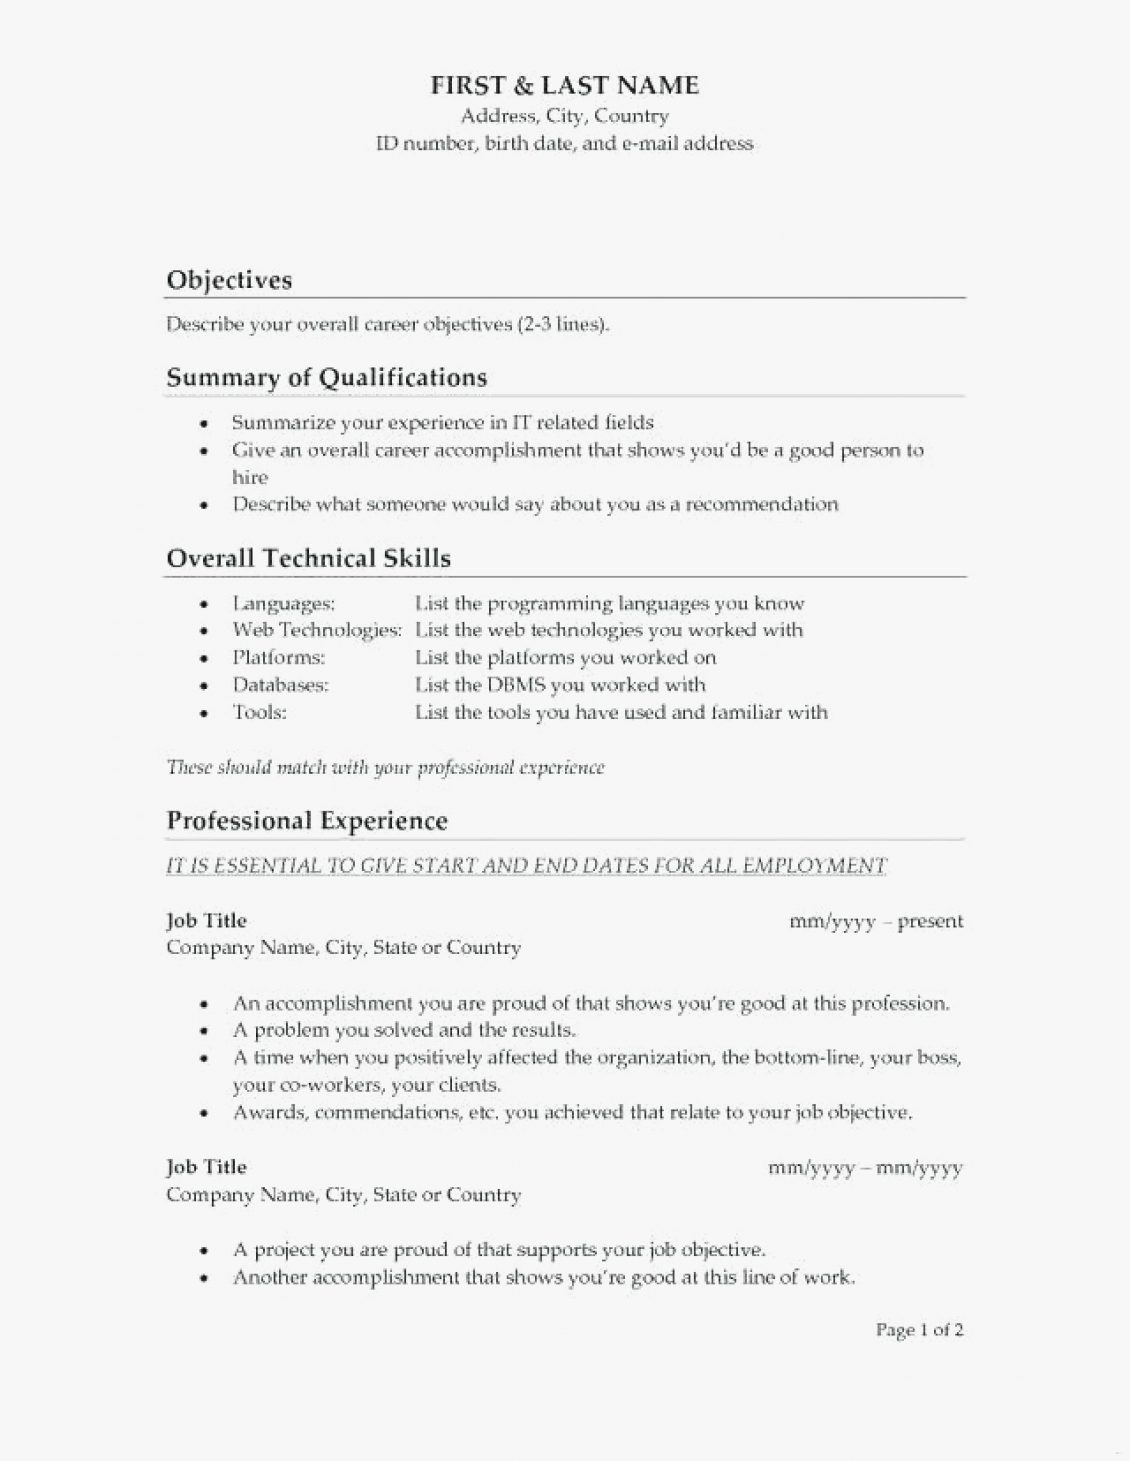 Good Objective For Resume Whats A Good Objective Put On Resume For Lovely General Objectives Resumes Accounting Samples Of Complete Consequently Statements 1130x1461 good objective for resume|wikiresume.com